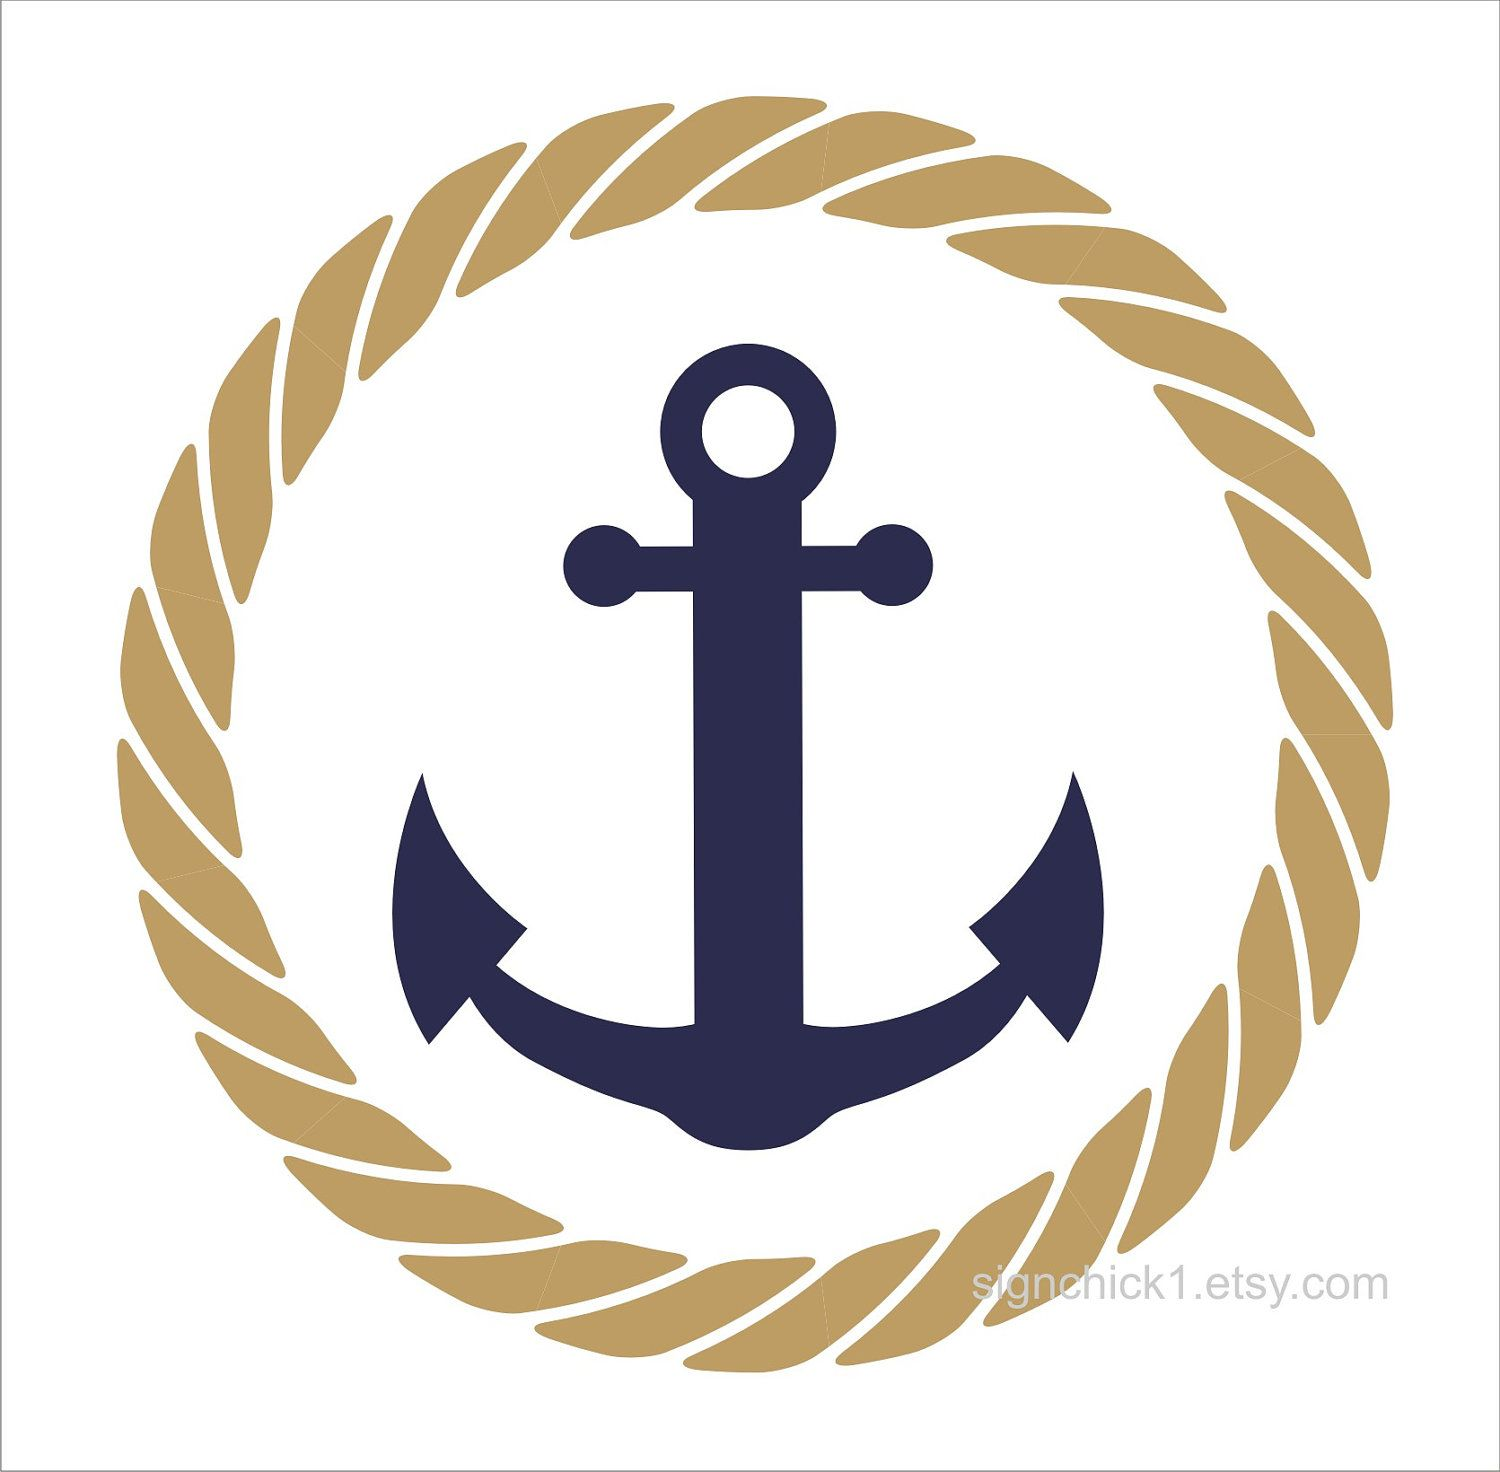 Cordage Marin Décoration Rope Circle With Anchor Wall Decal Nautical Wall Decor 12